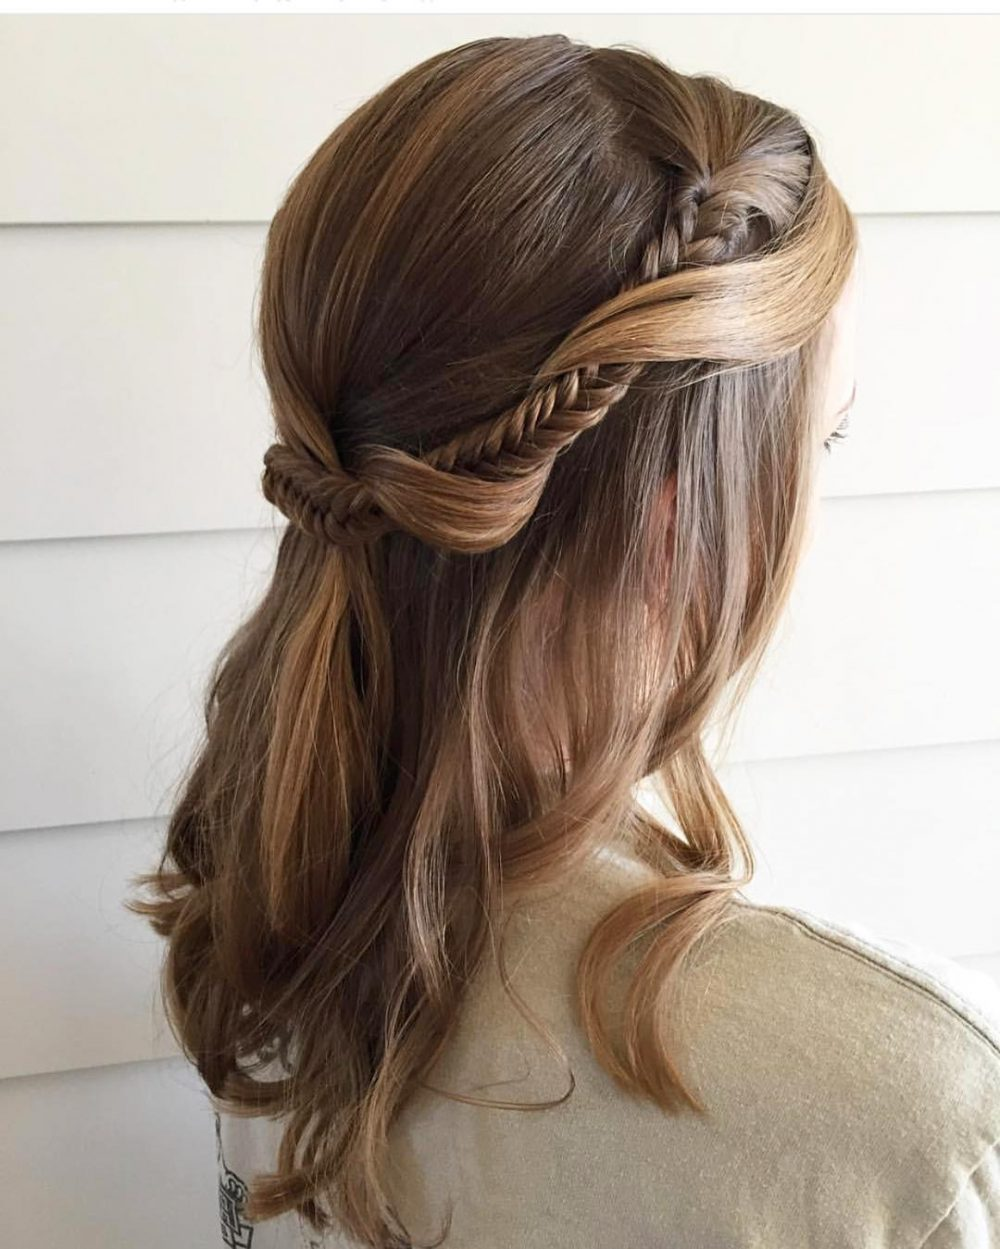 20 Super Easy Updos Anyone Can Do (Trending In 2019